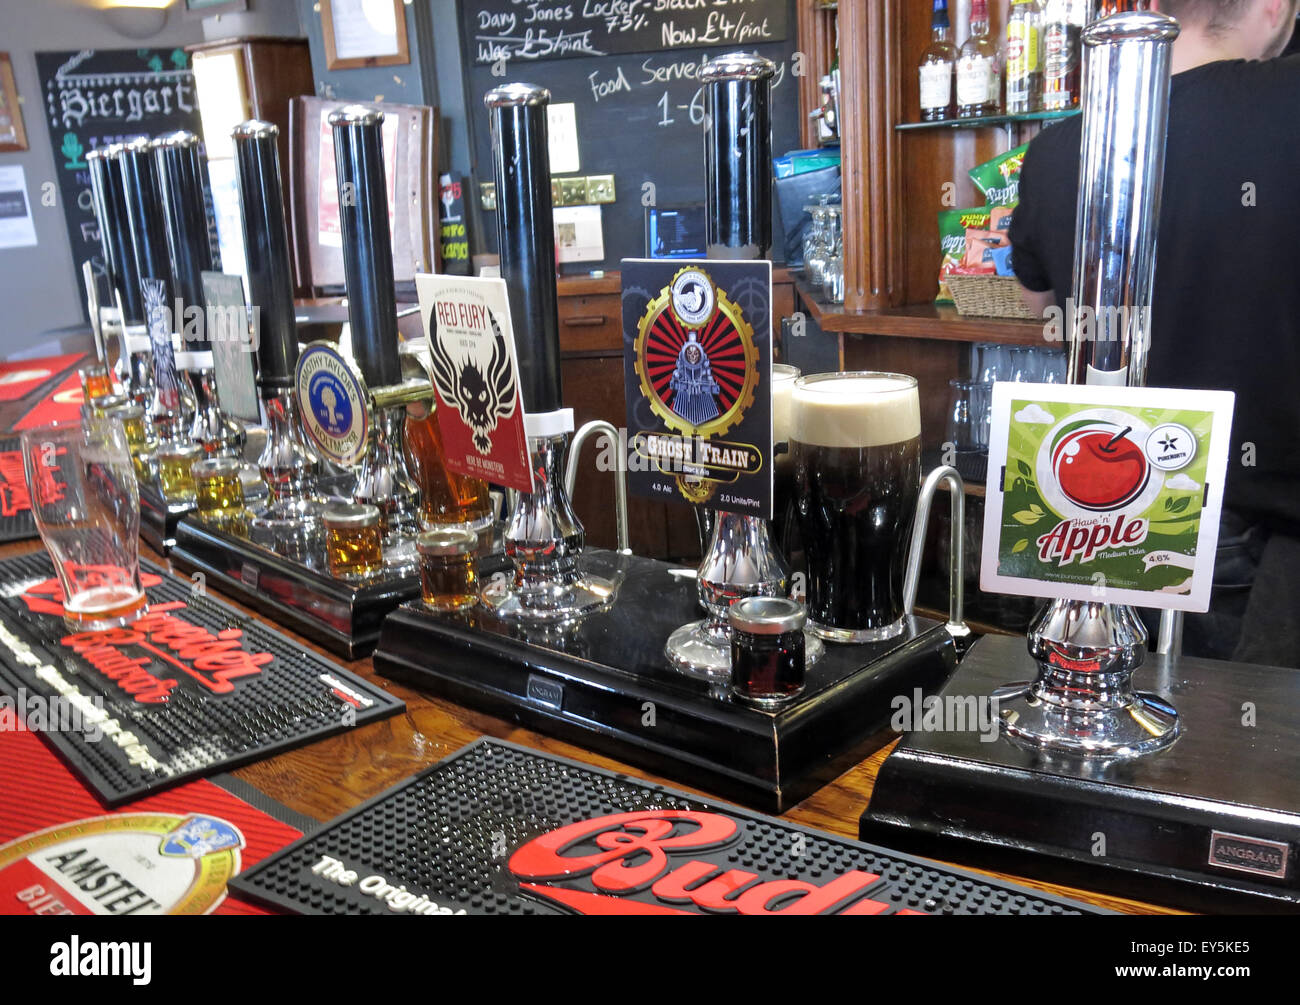 The Sportsman Inn, Huddersfield, West Yorkshire, England, UK - Stock Image